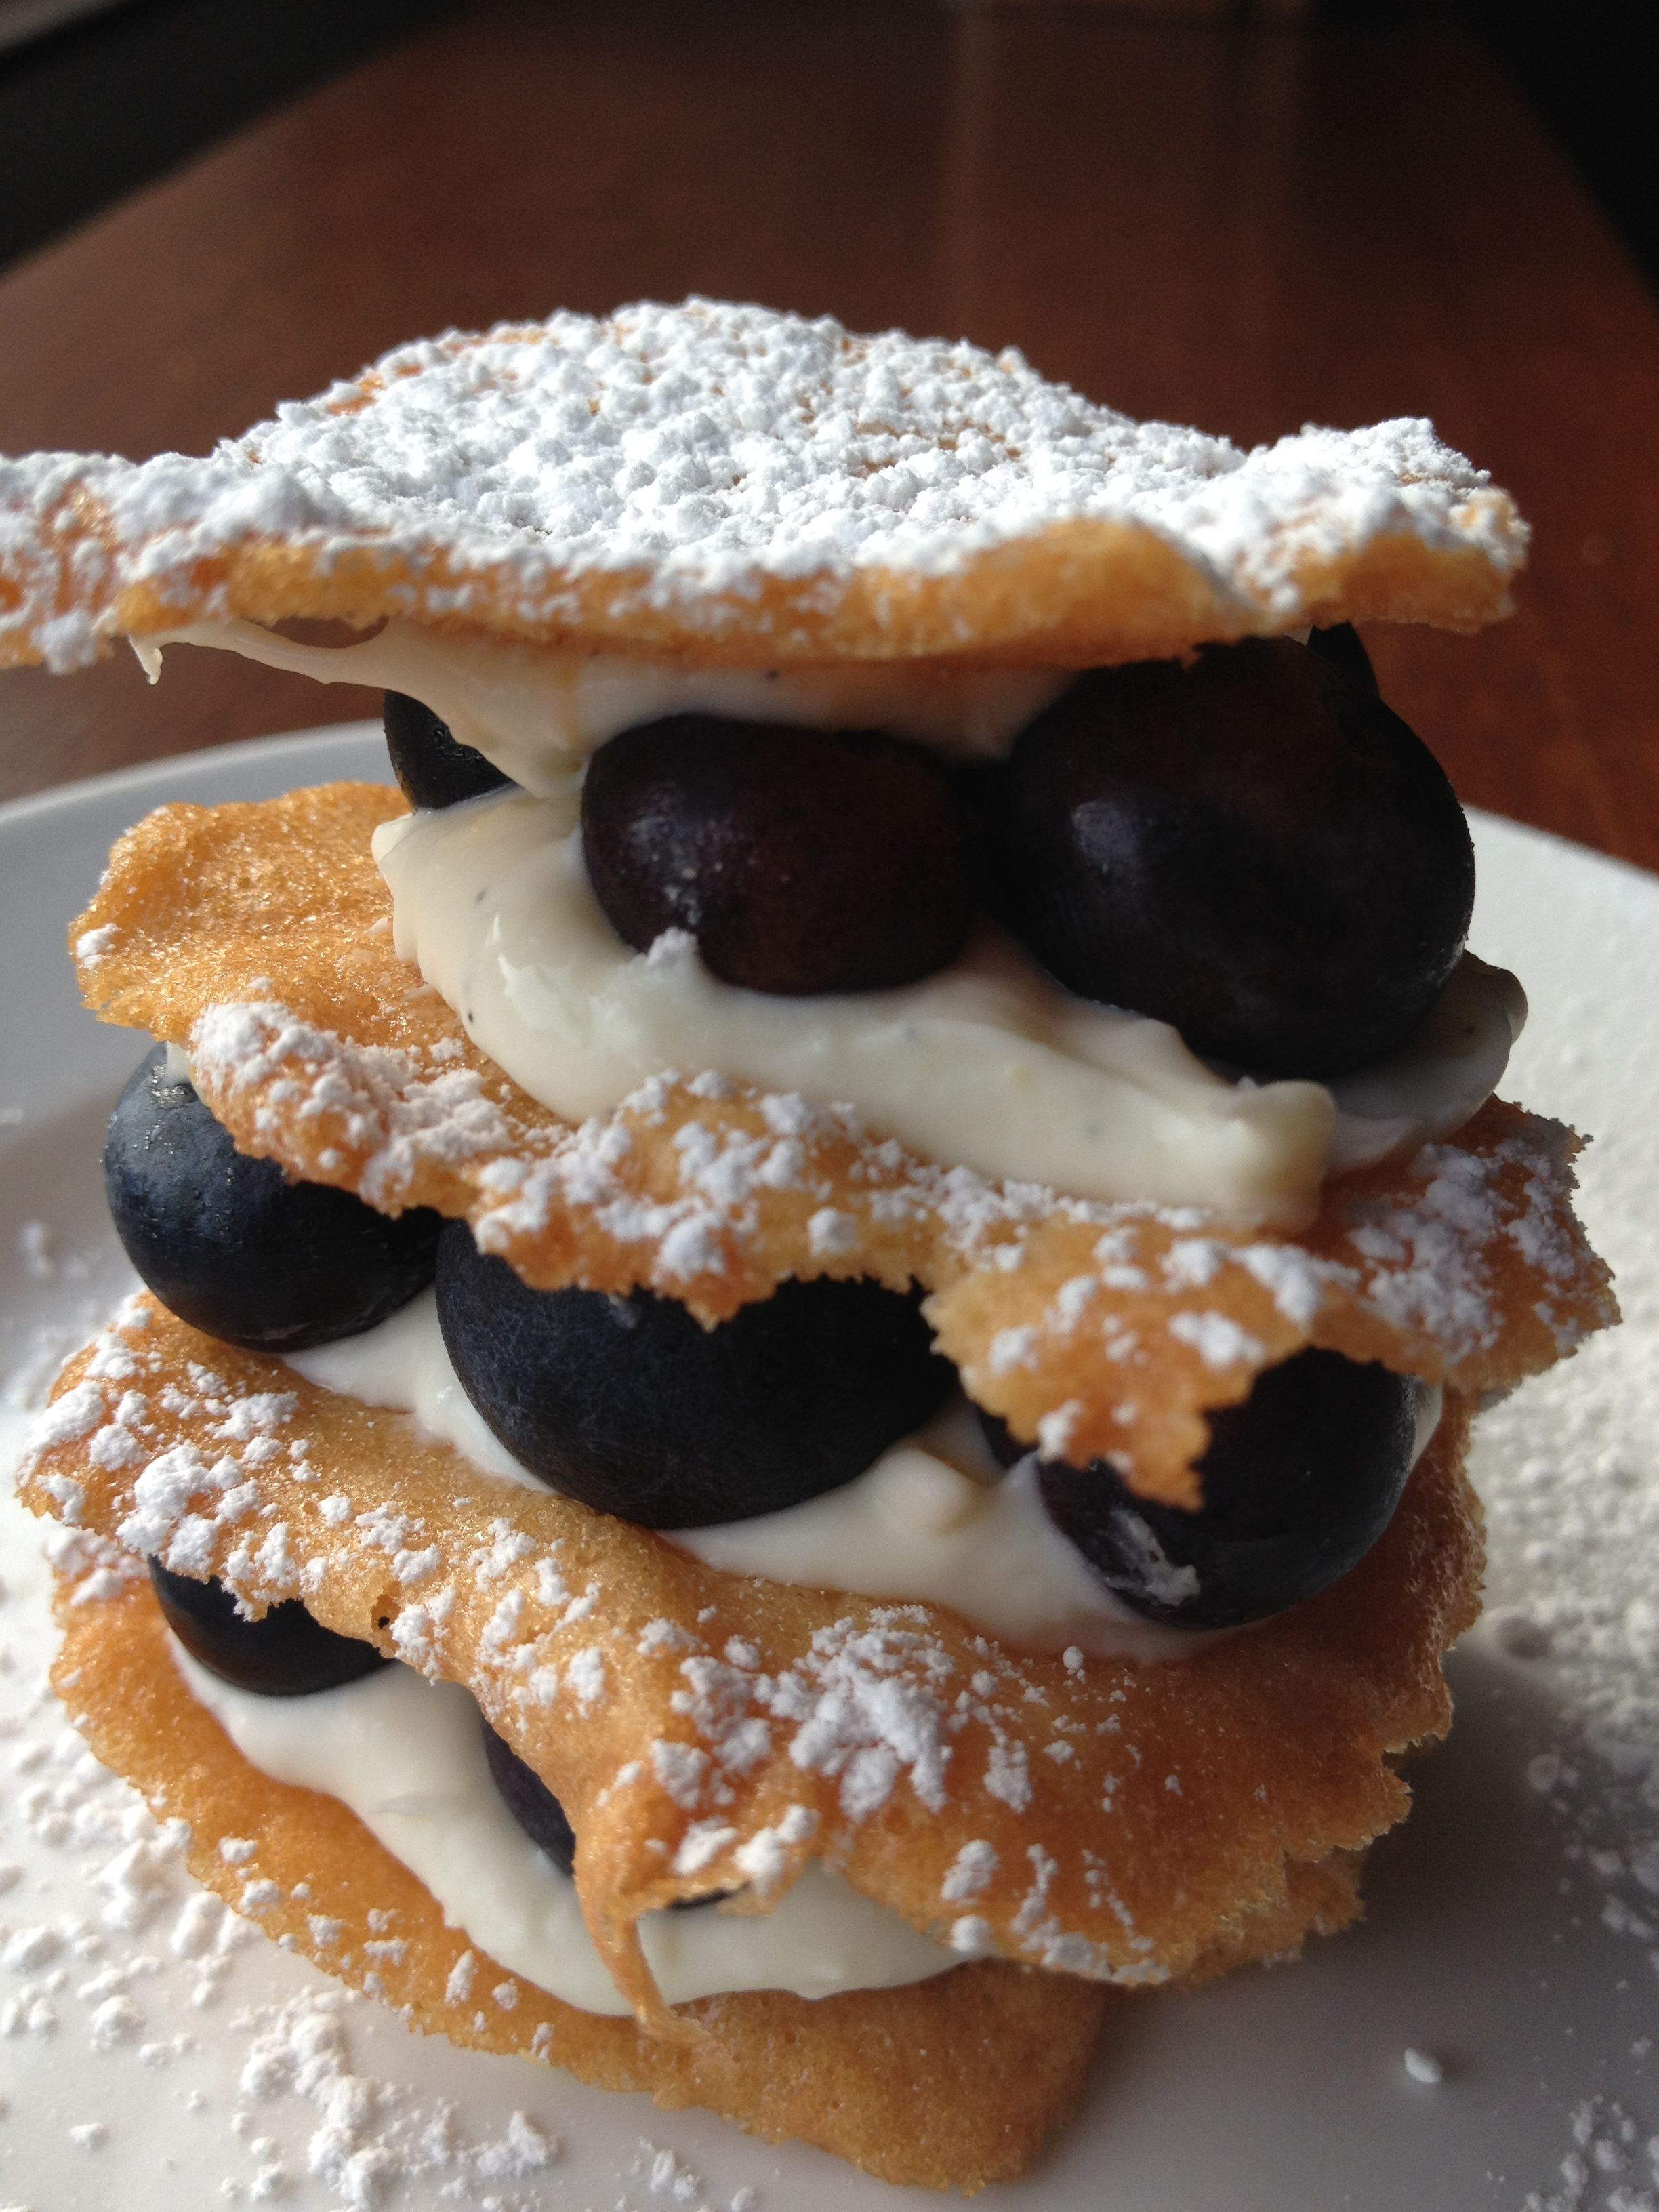 Tuile Cookies with house-made mascarpone cheese and fresh blueberries.